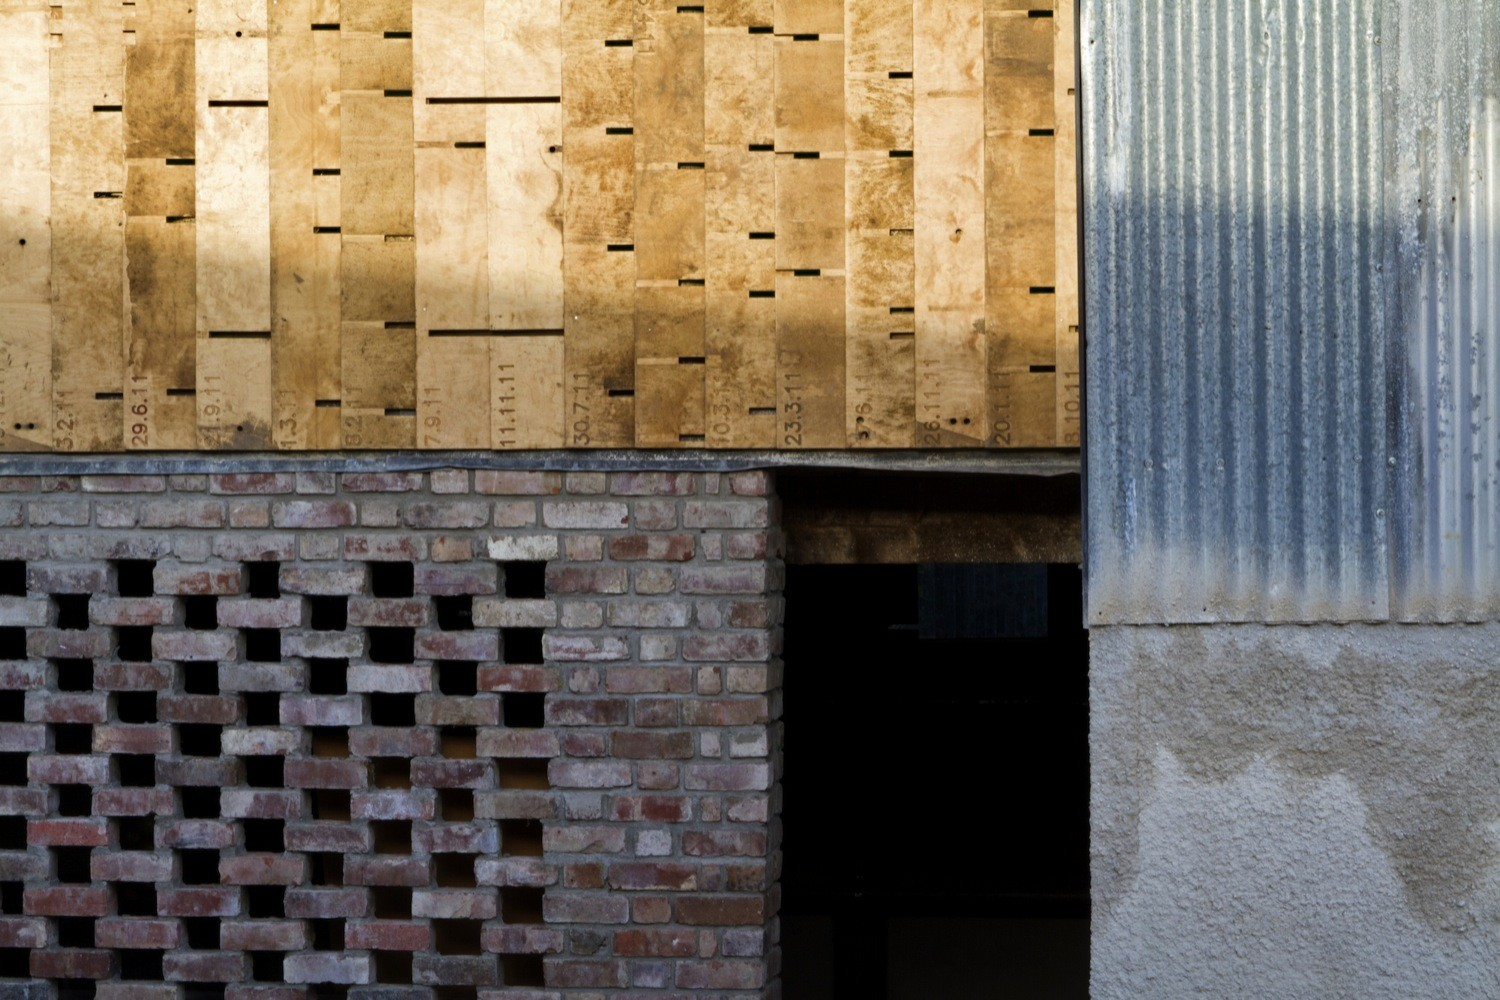 Cowshed__design_and_build_workshops_led_by_Cowshed_Collective._Image_by_Ste_Murray_(4).jpg